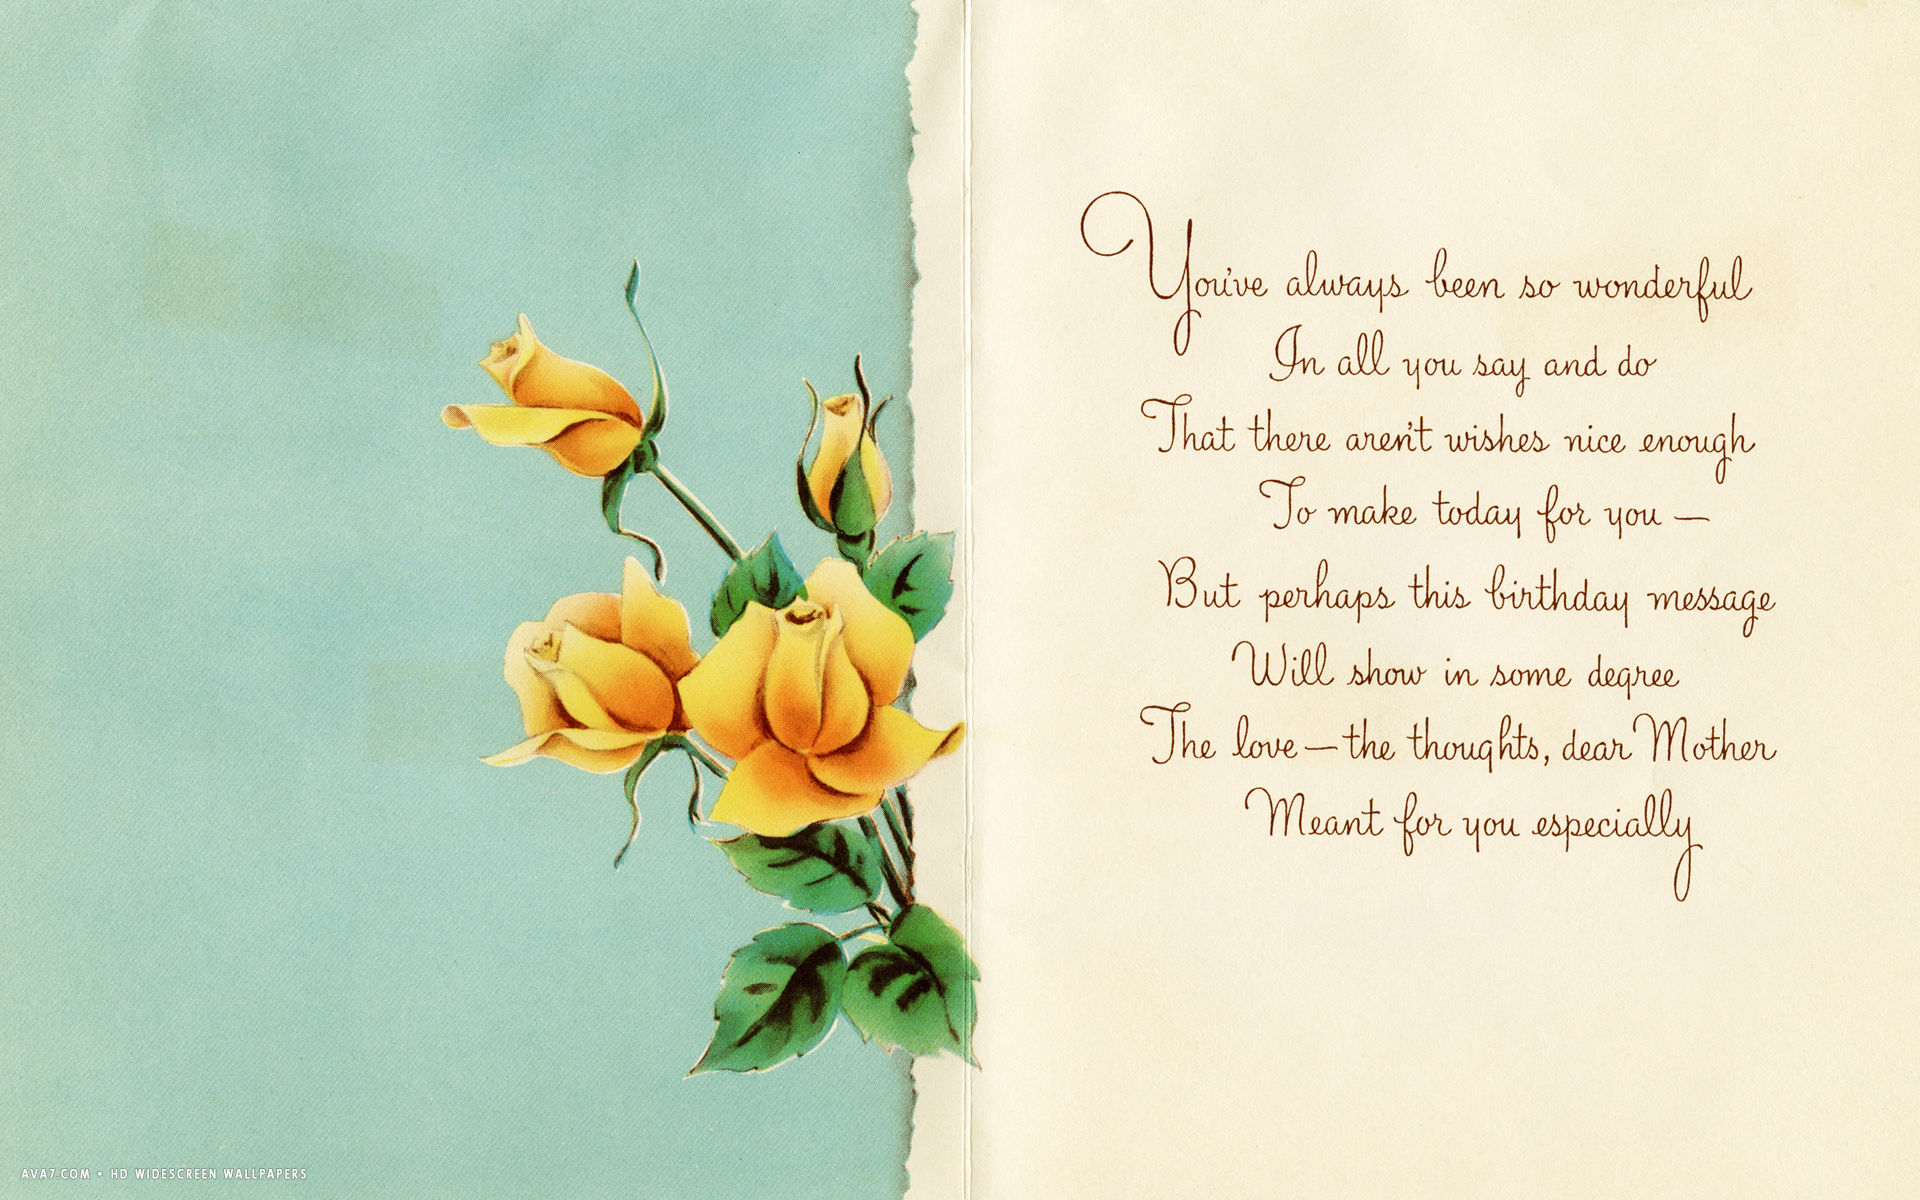 happy birthday greeting card message ; happy-birthday-dear-mother-message-card-yellow-roses-love